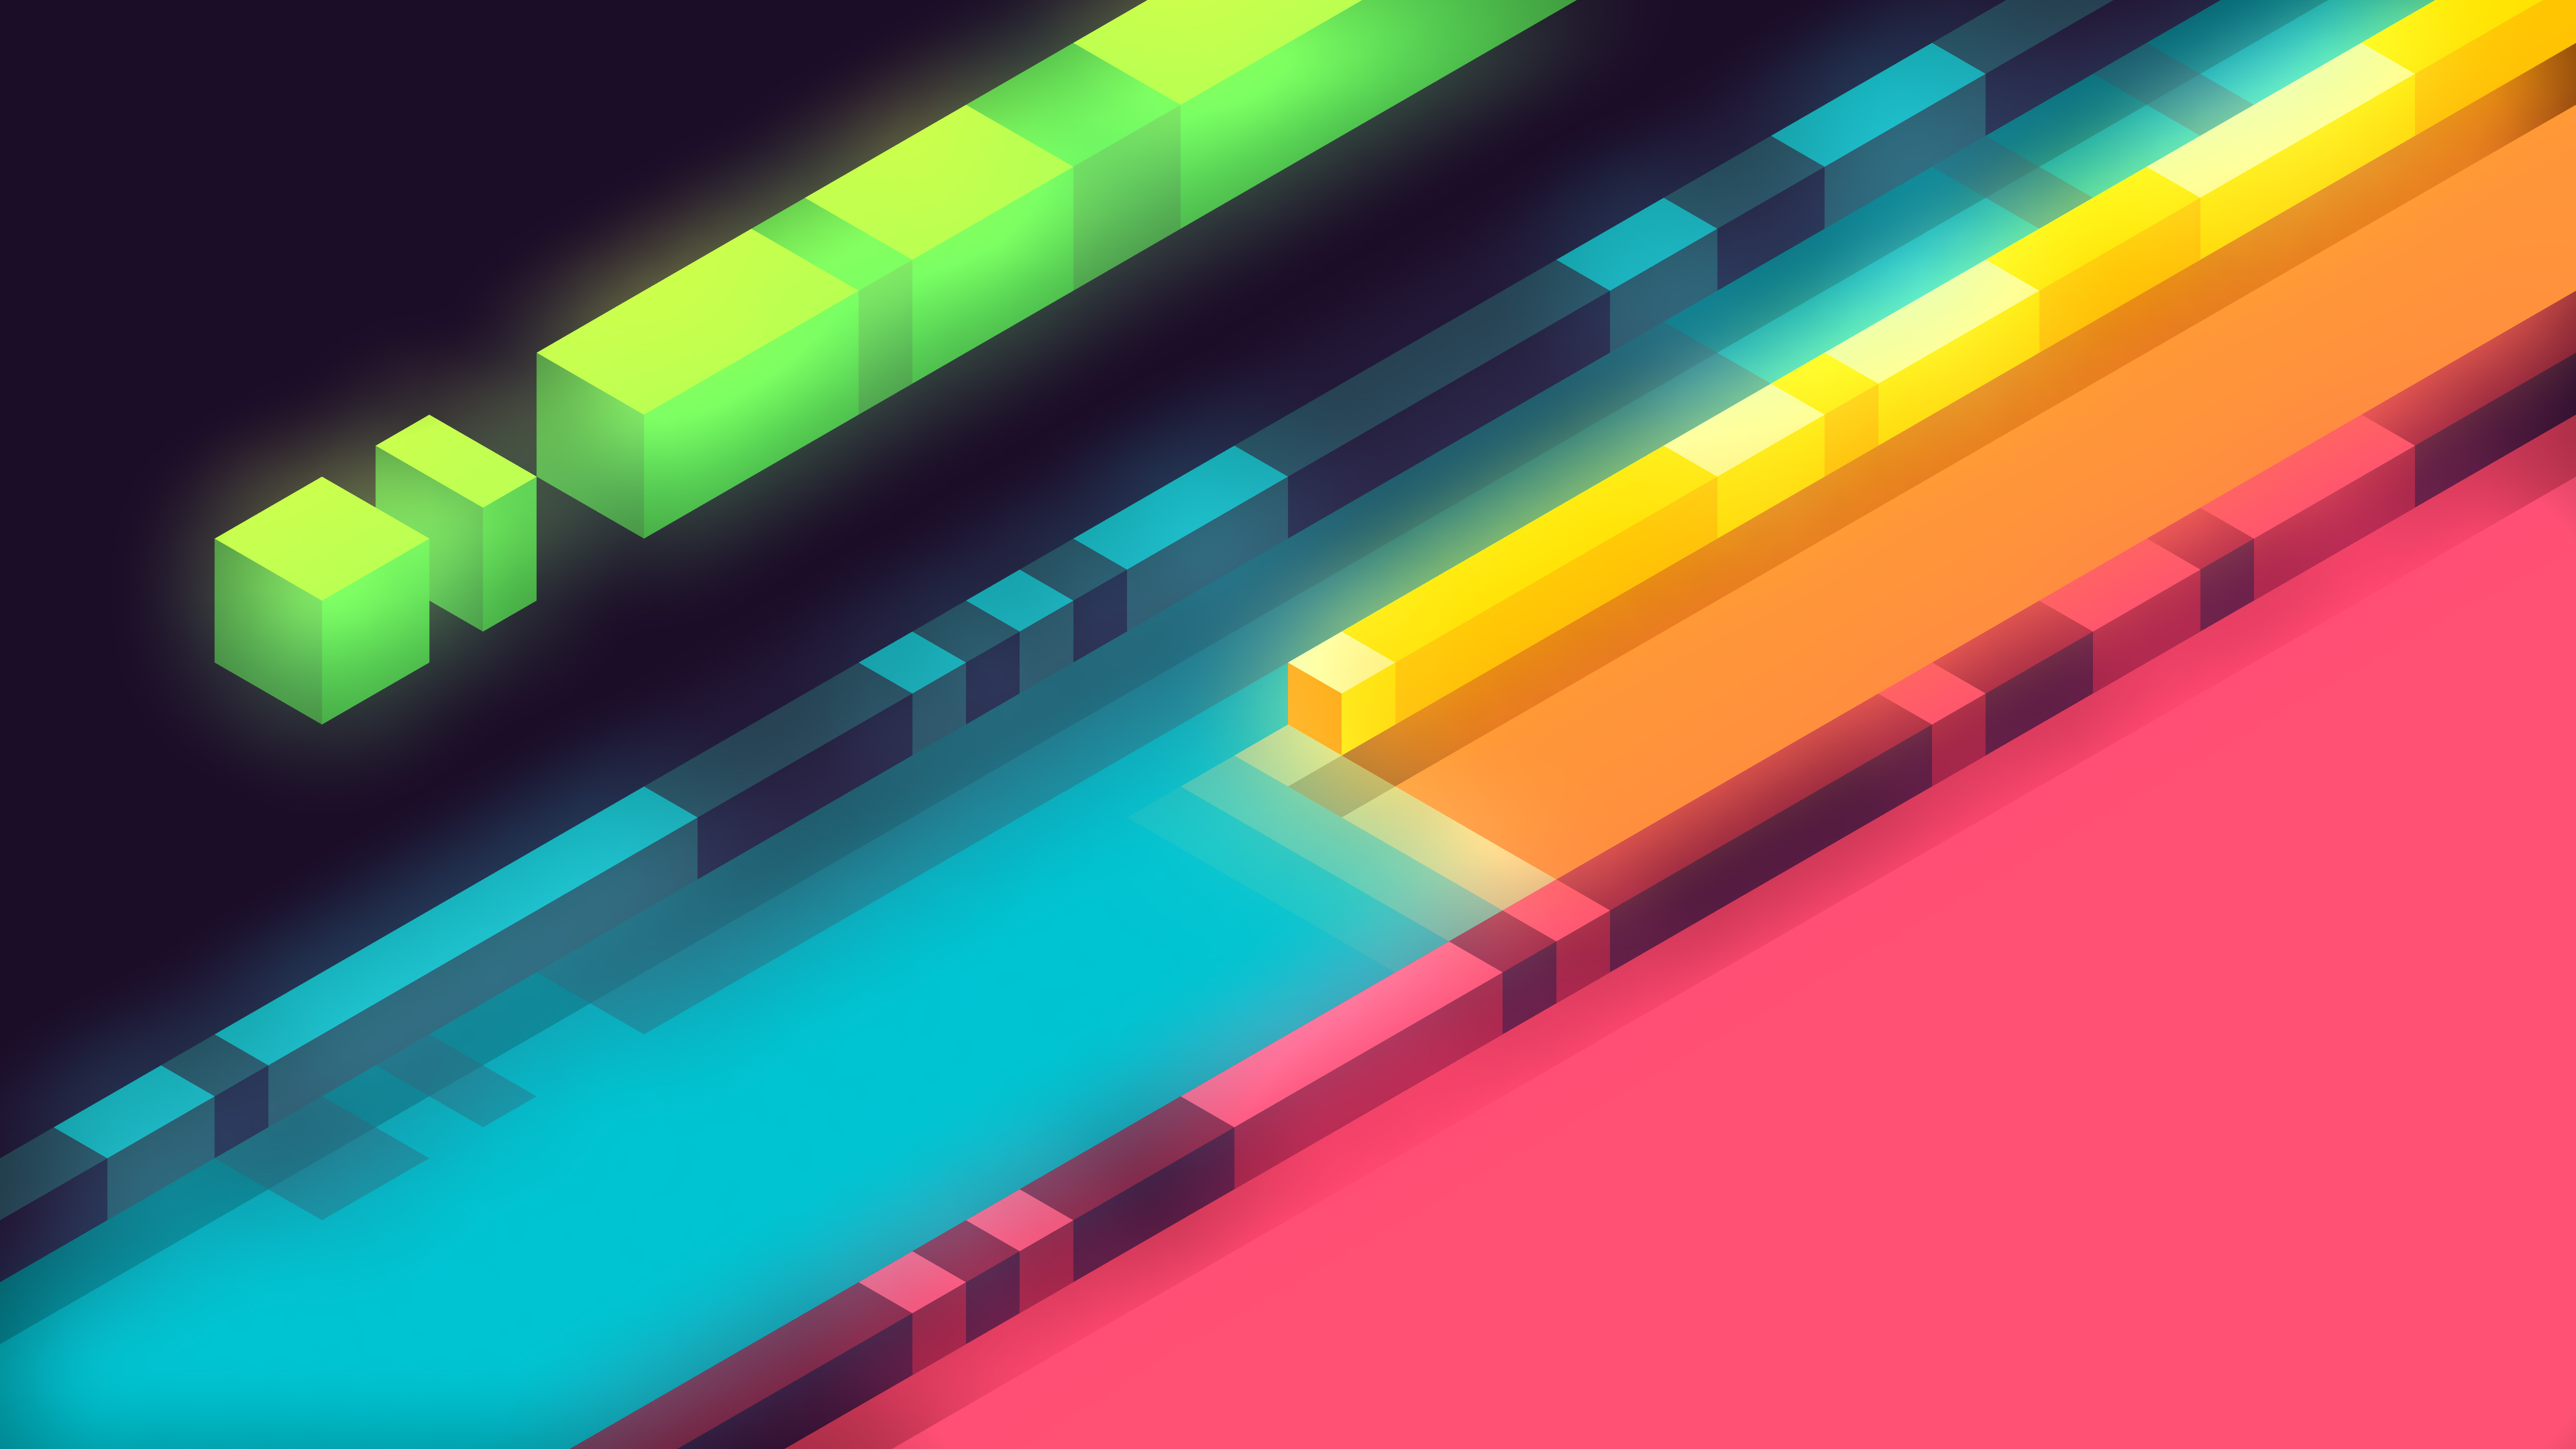 3d Abstract Colorful Shapes Minimalist 5k, HD 3D, 4k